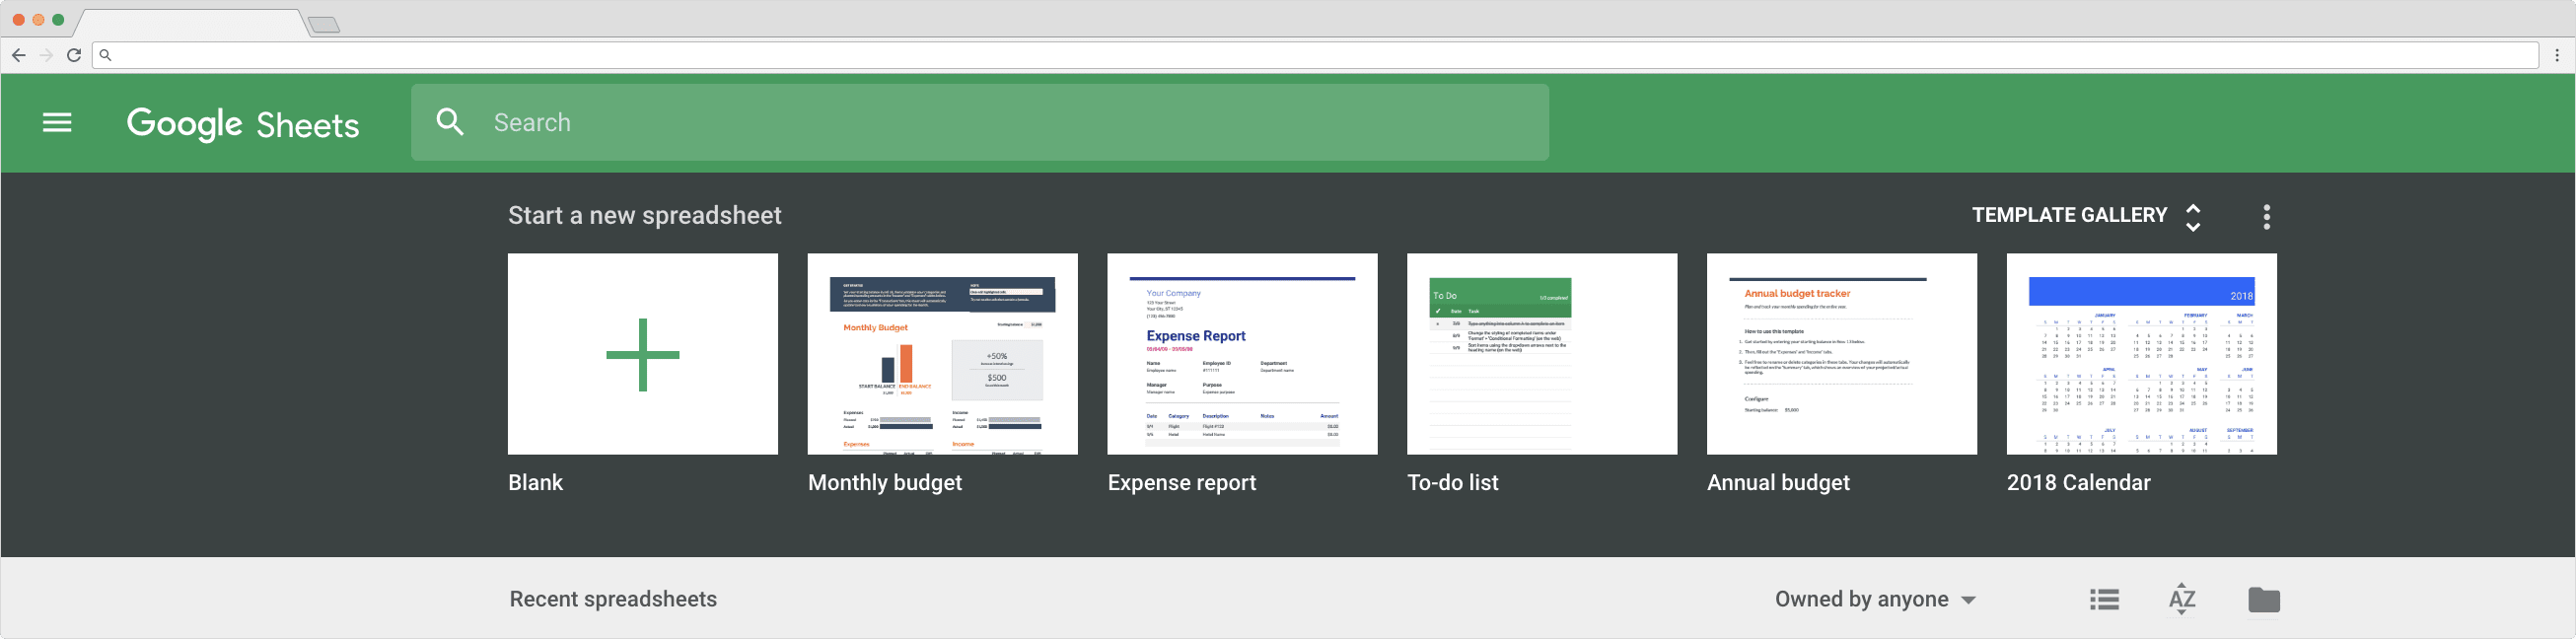 Free Inventory Template: Google Sheets Free Template Gallery